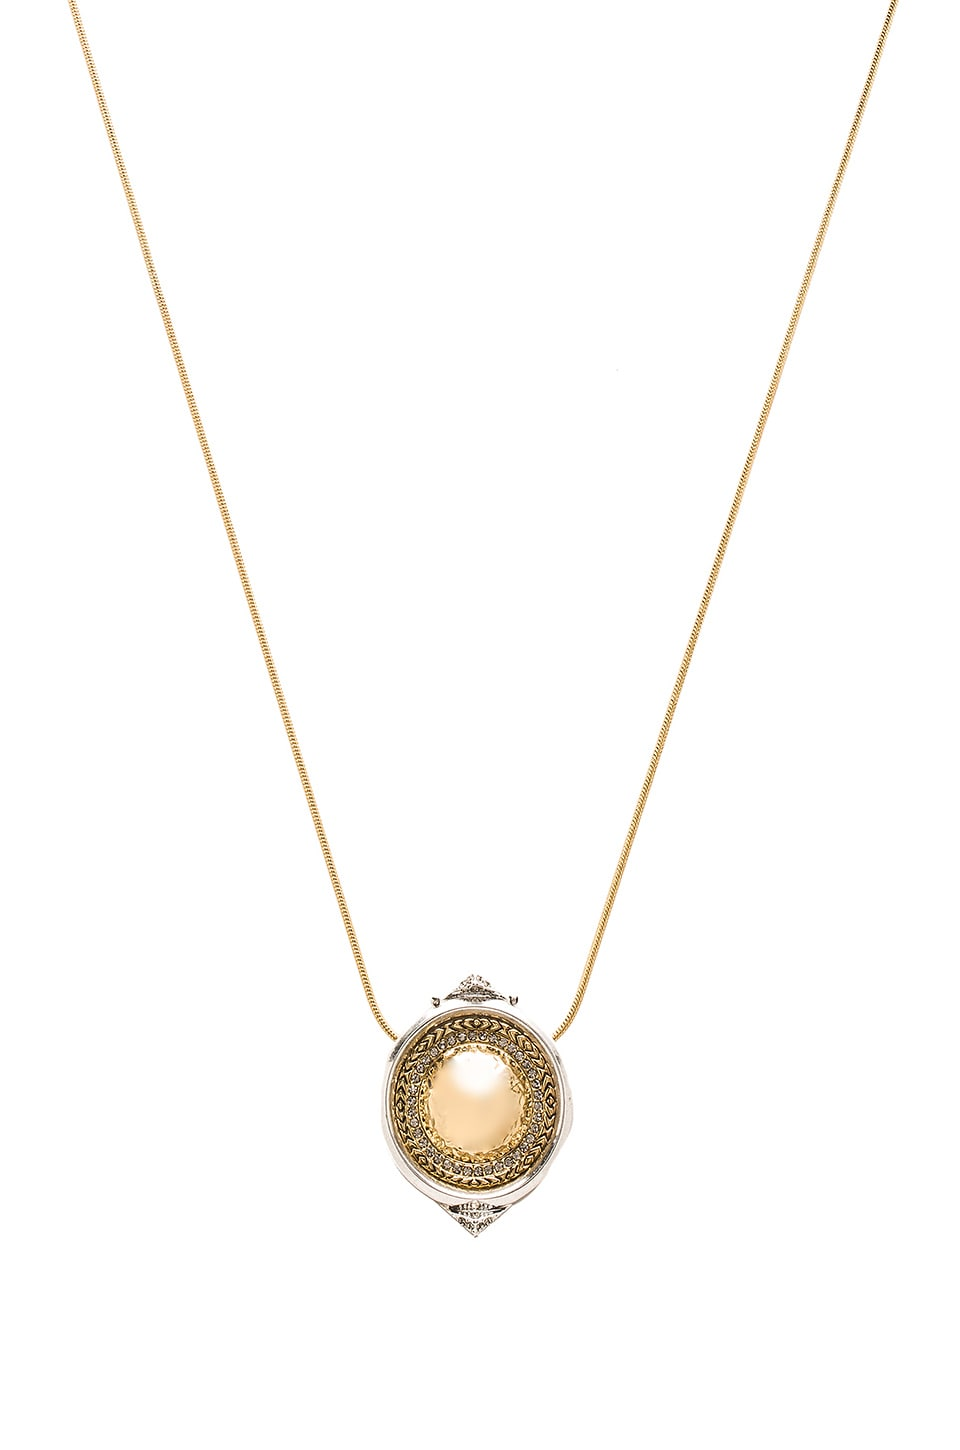 House of Harlow 1960 Scutum Pendent Necklace in Gold & Silver